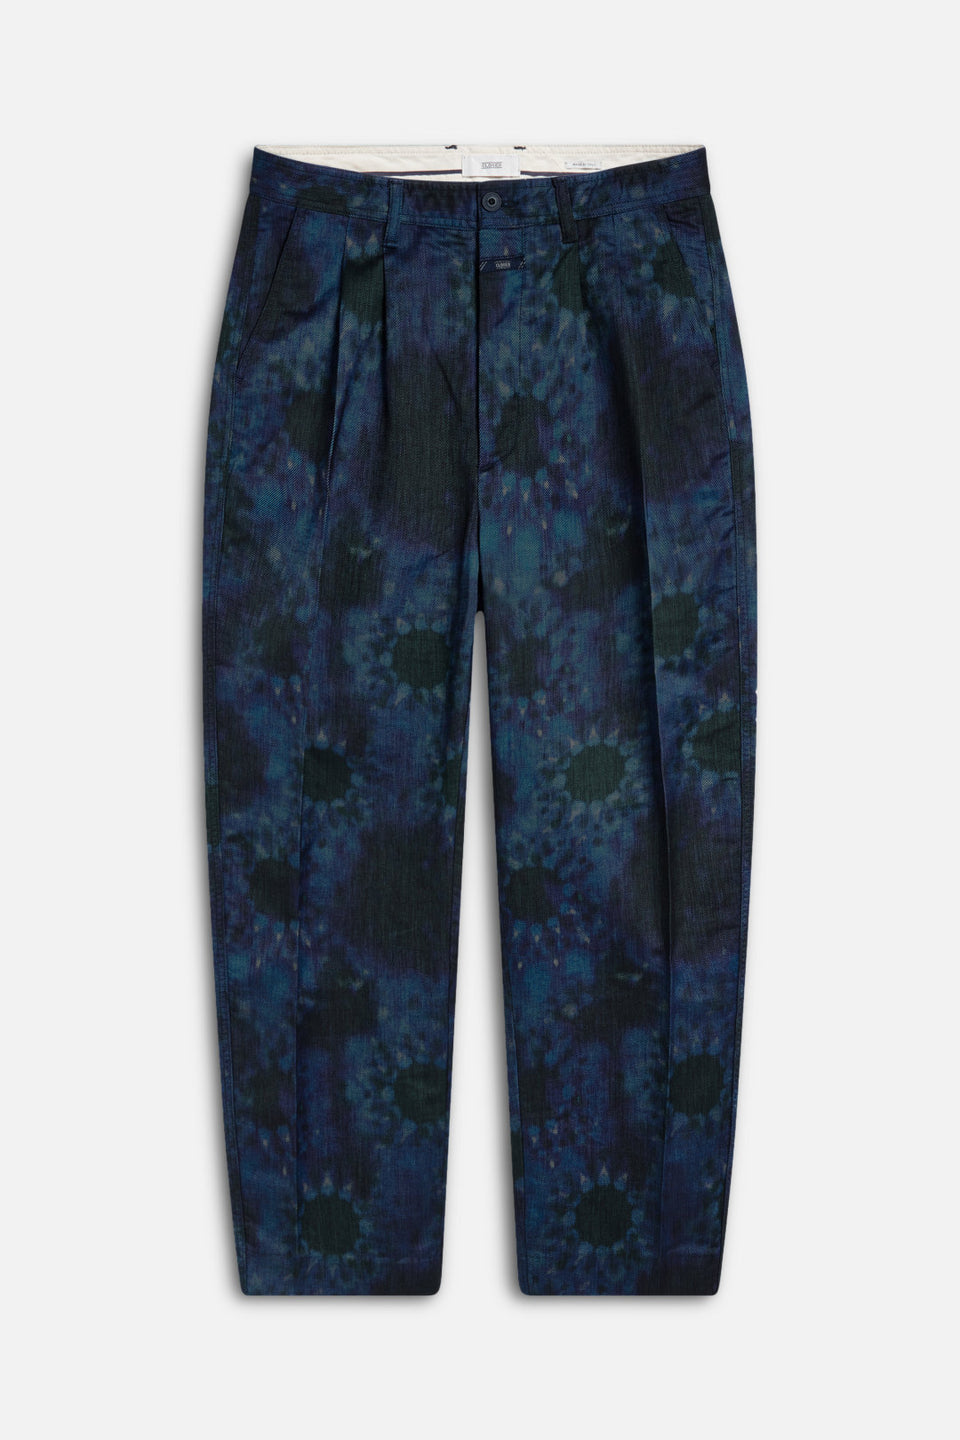 CLOSED • Pantalon Port Wide en Twill italien imprimé Bleu et Noir